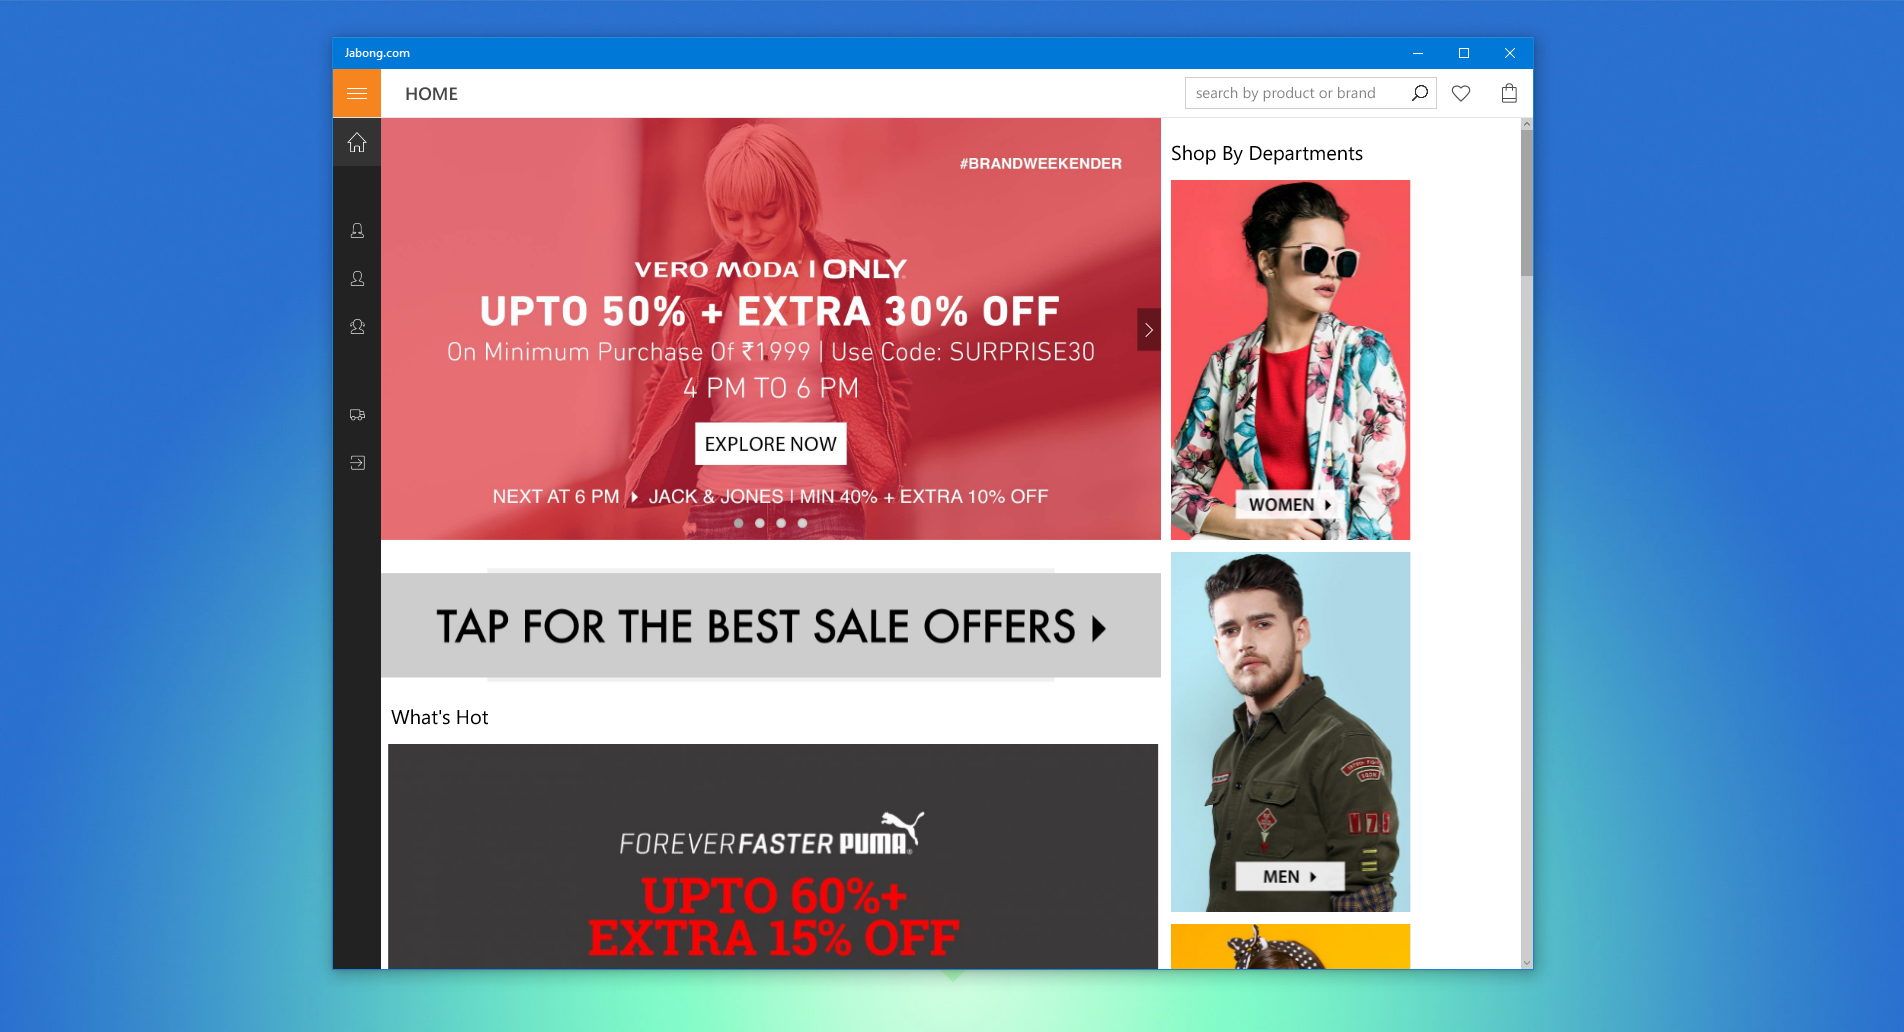 Habong's Windows 10 Universal App Shines For Indian Shoppers